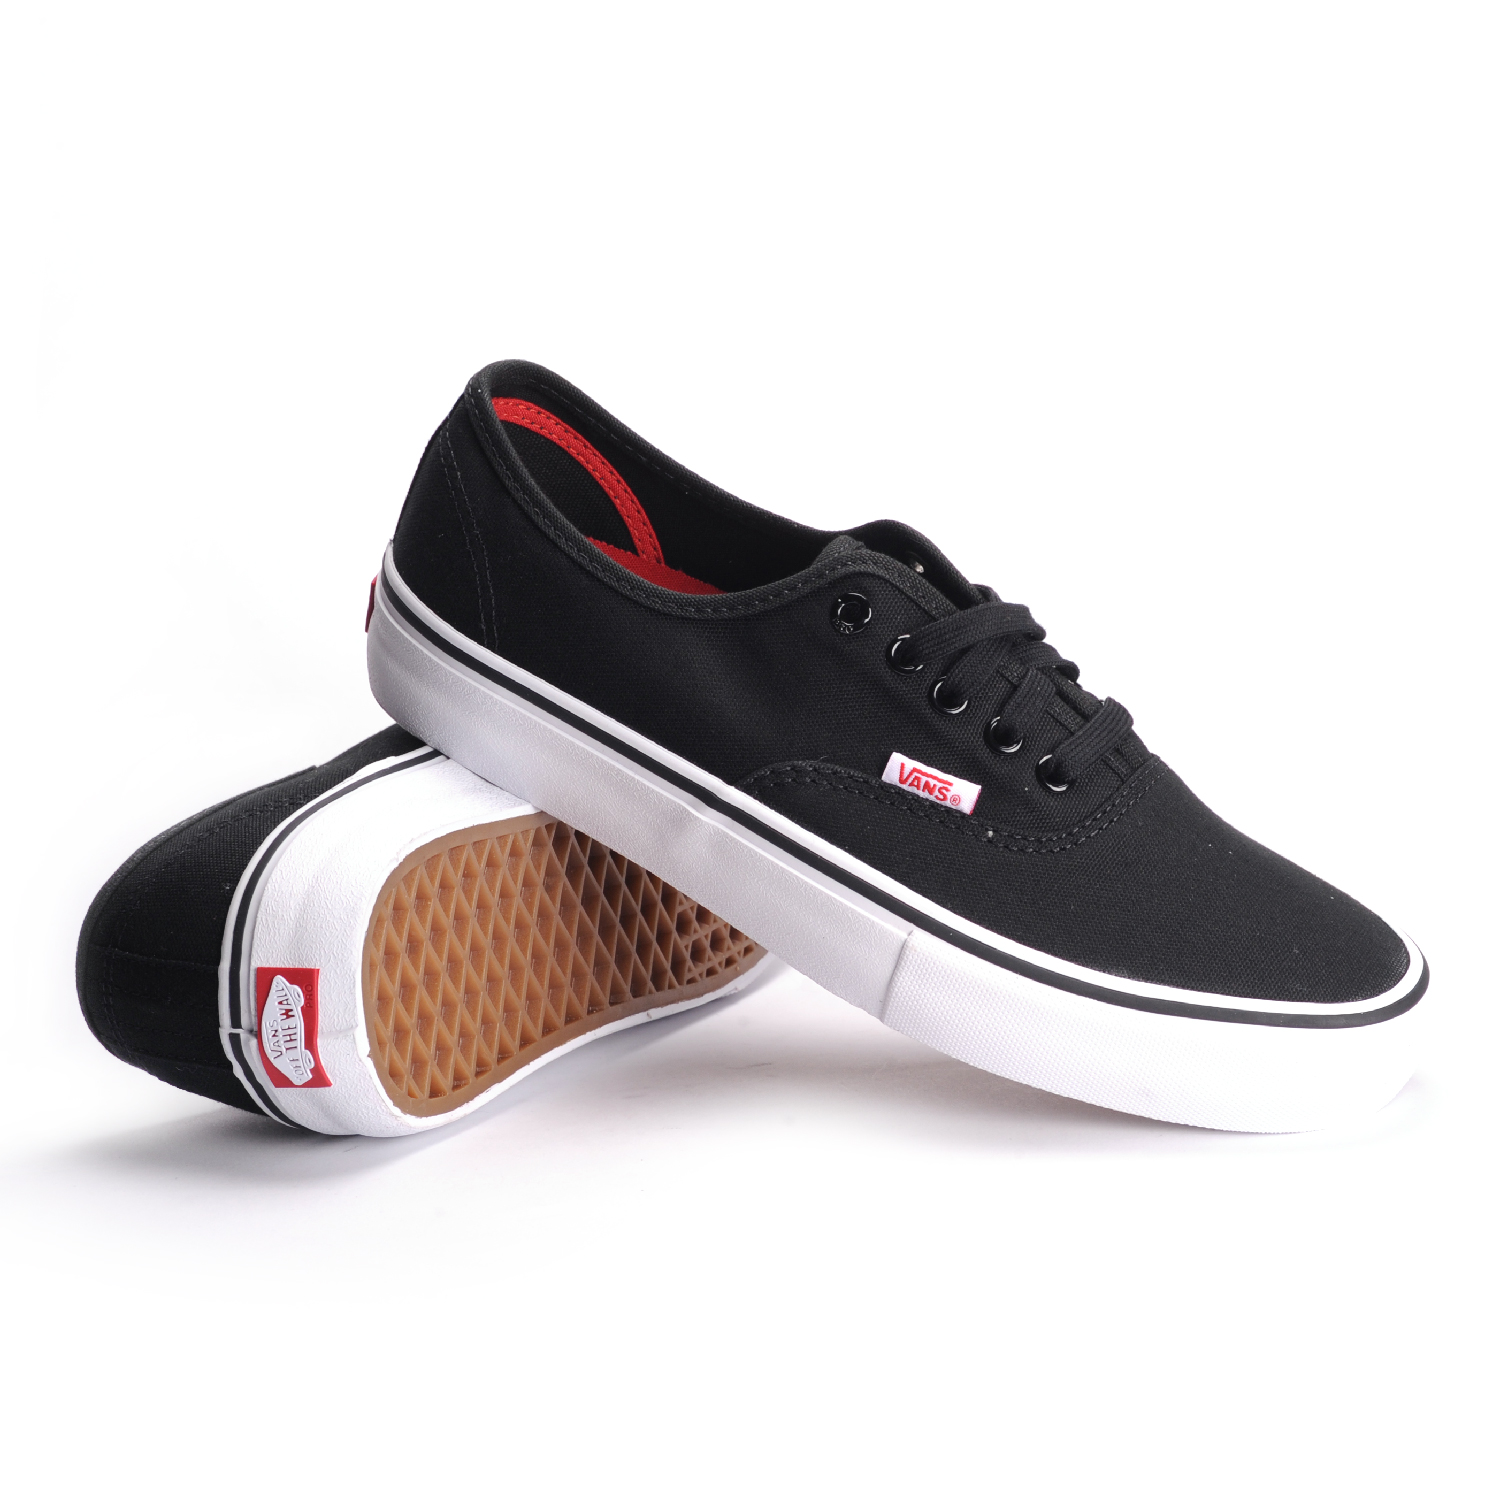 Vans Authentic Pro (Black/White) Men's Skate Shoes